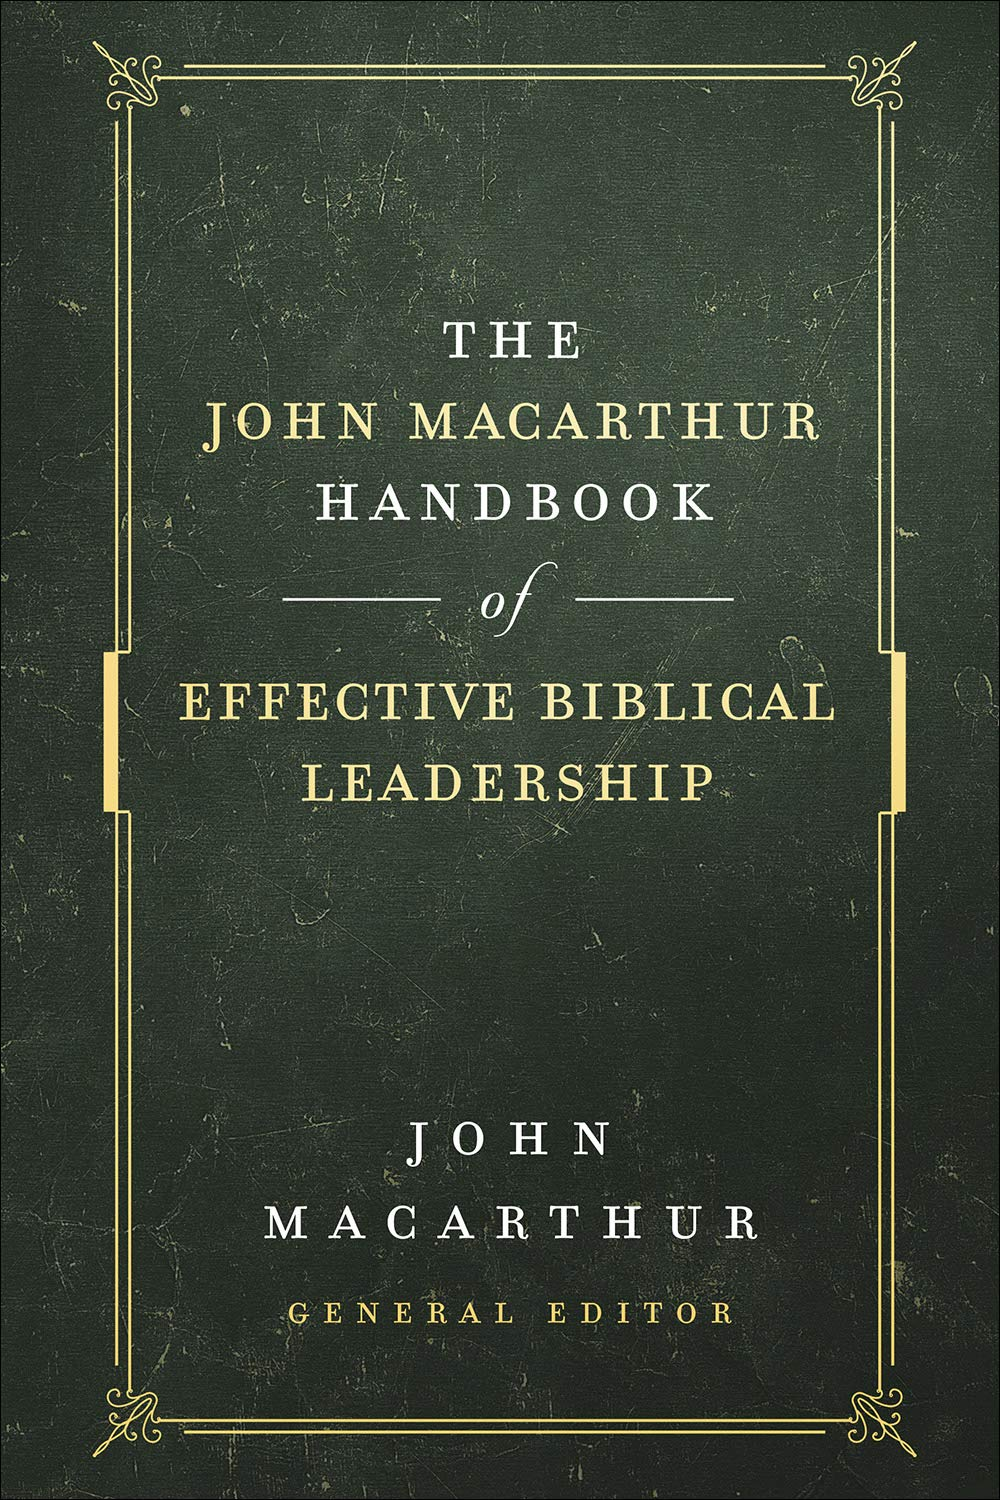 The John MacArthur Handbook of Effective Biblical Leadership